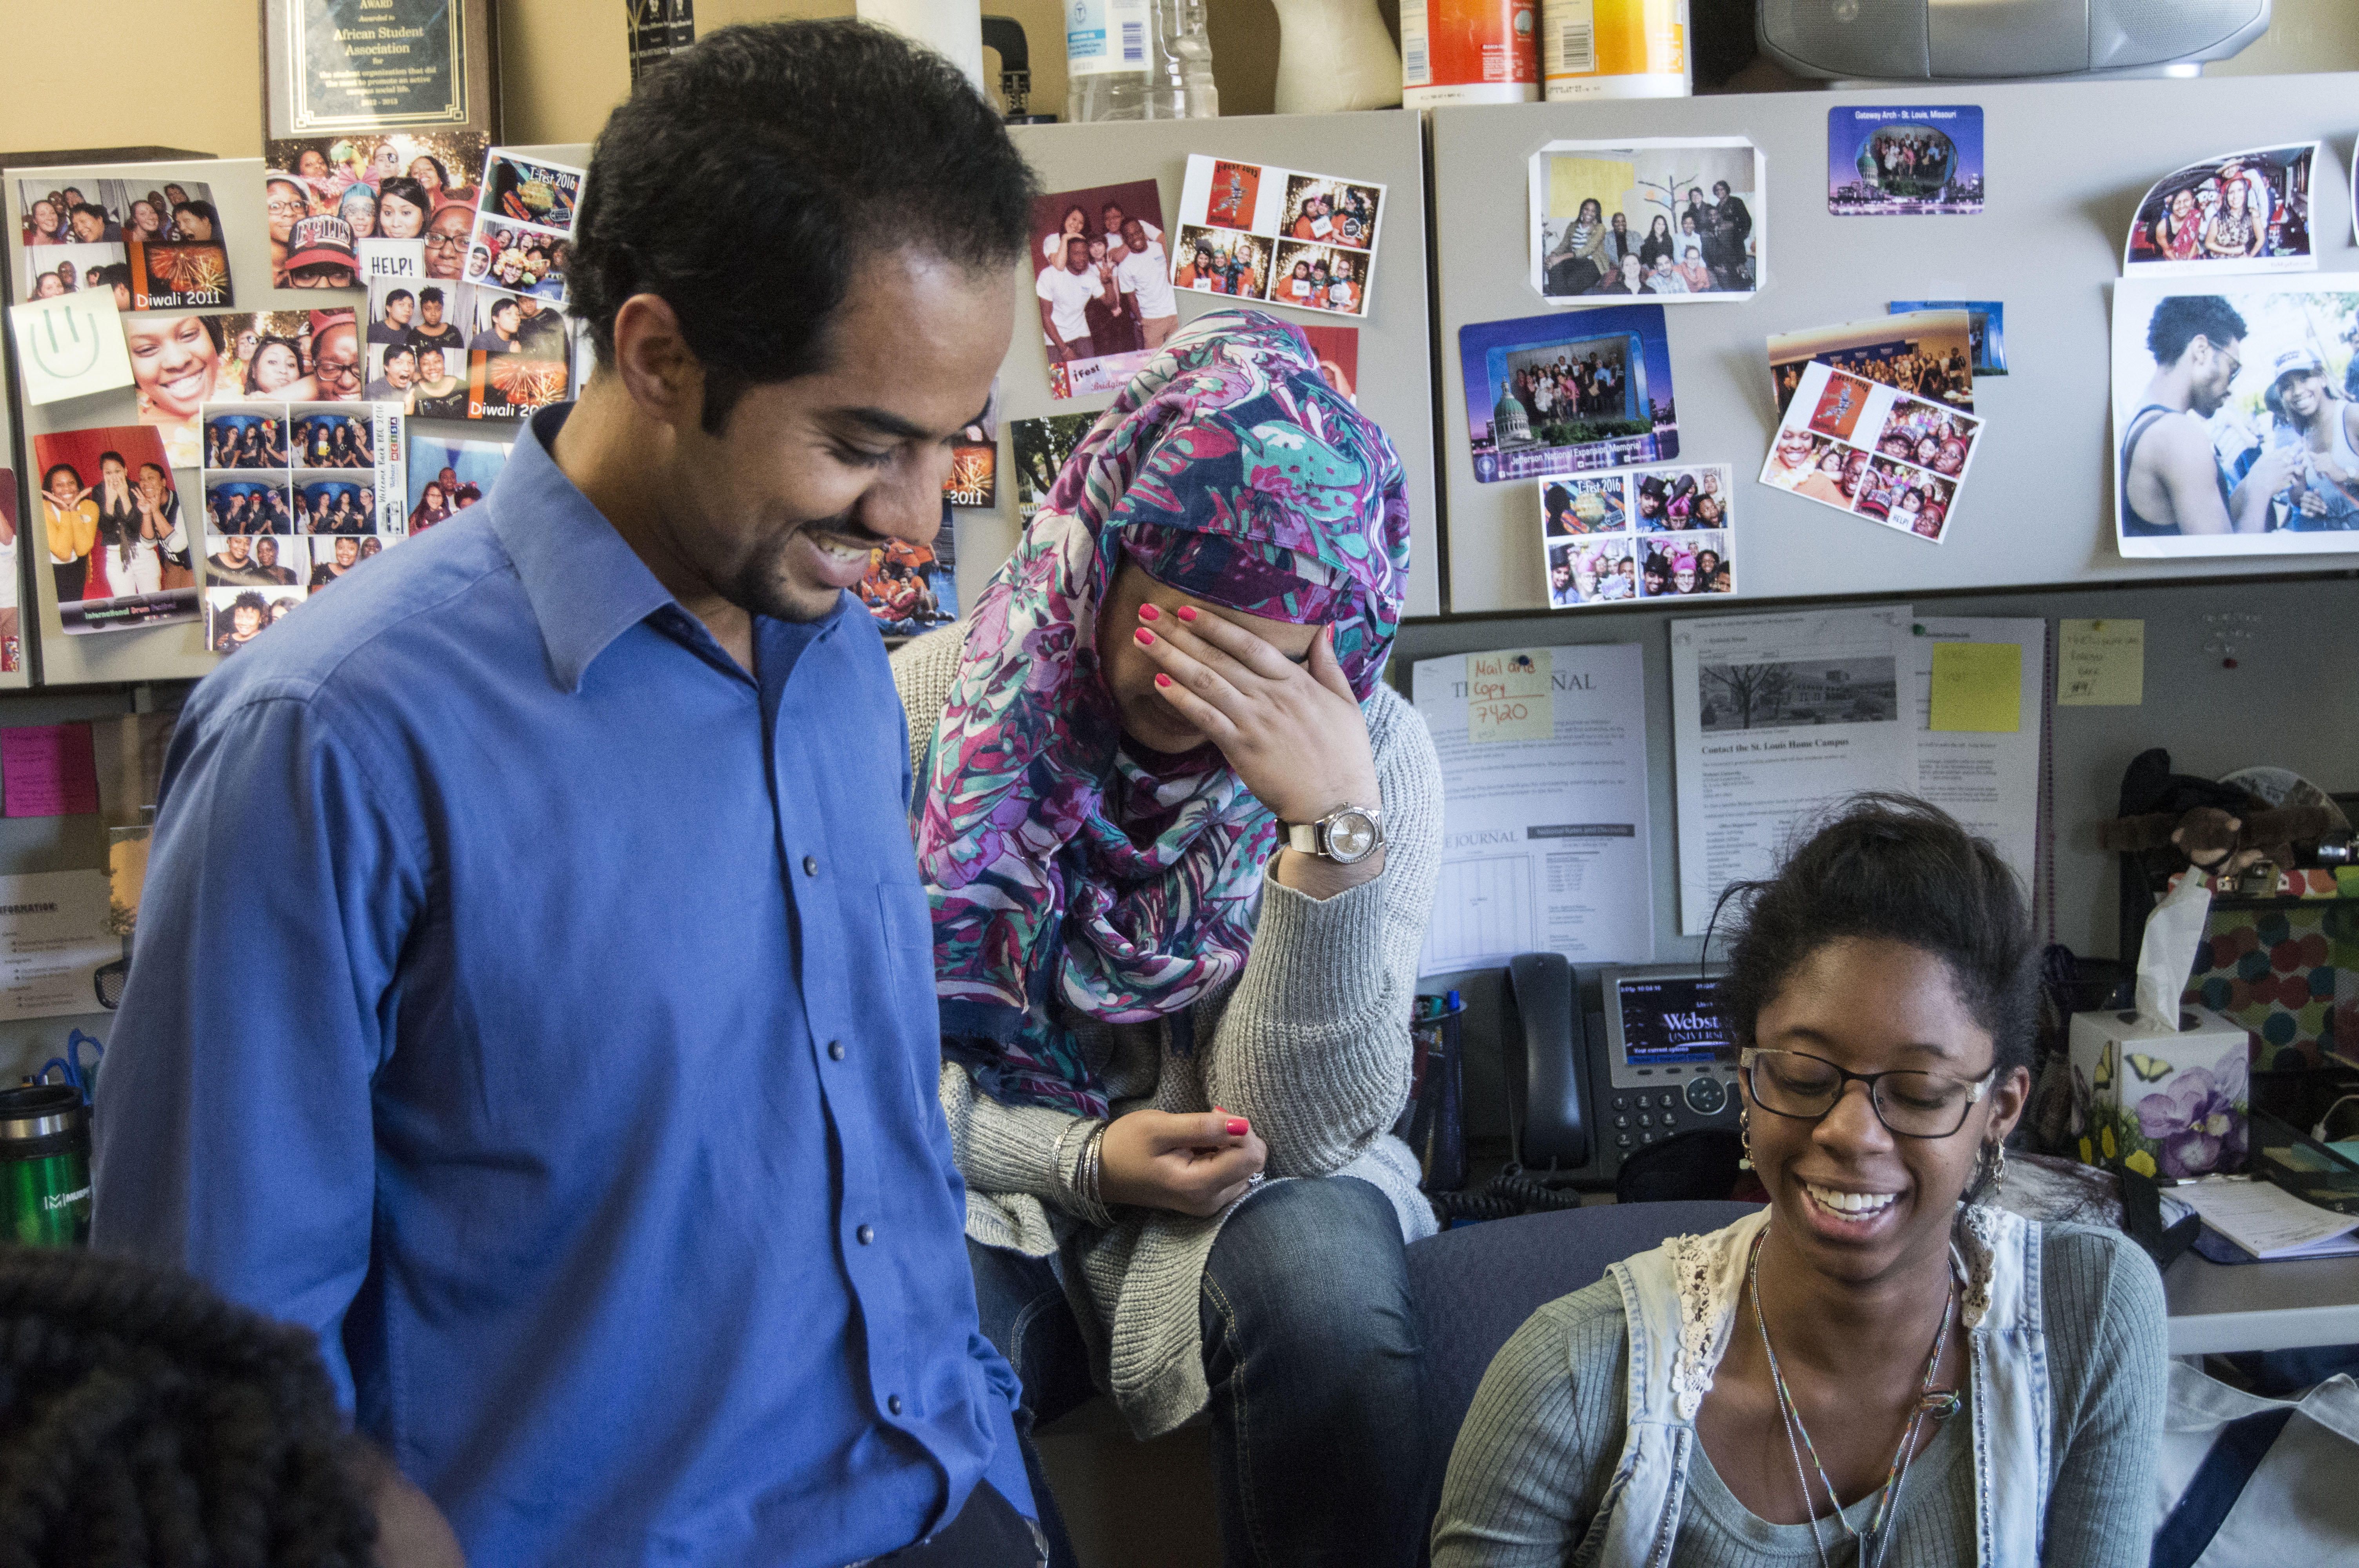 webster muslim As part of the follow-up to the young review, the barrow cadbury trust commissioned maslaha to undertake a scoping exercise to ascertain how criminal justice professionals can be more effective in responding to offending by young muslim men who come into contact with the criminal justice system.